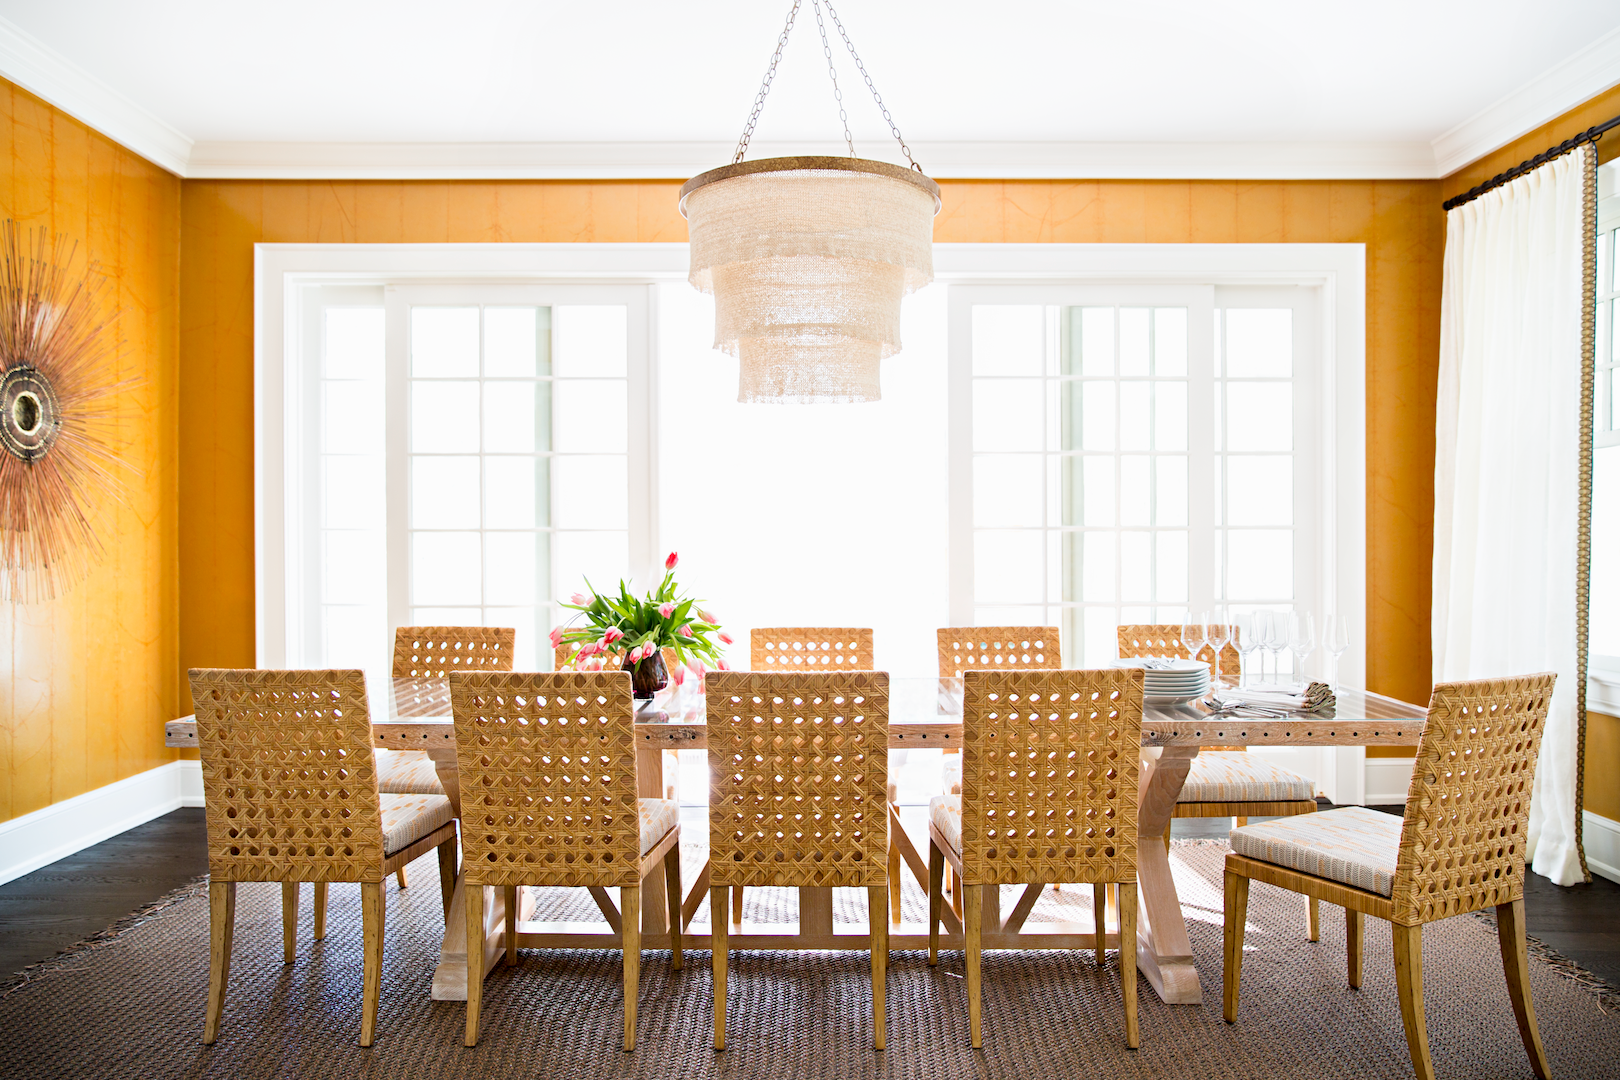 12 Colors You ll Be Seeing Everywhere This Summer, According To Interior Designers